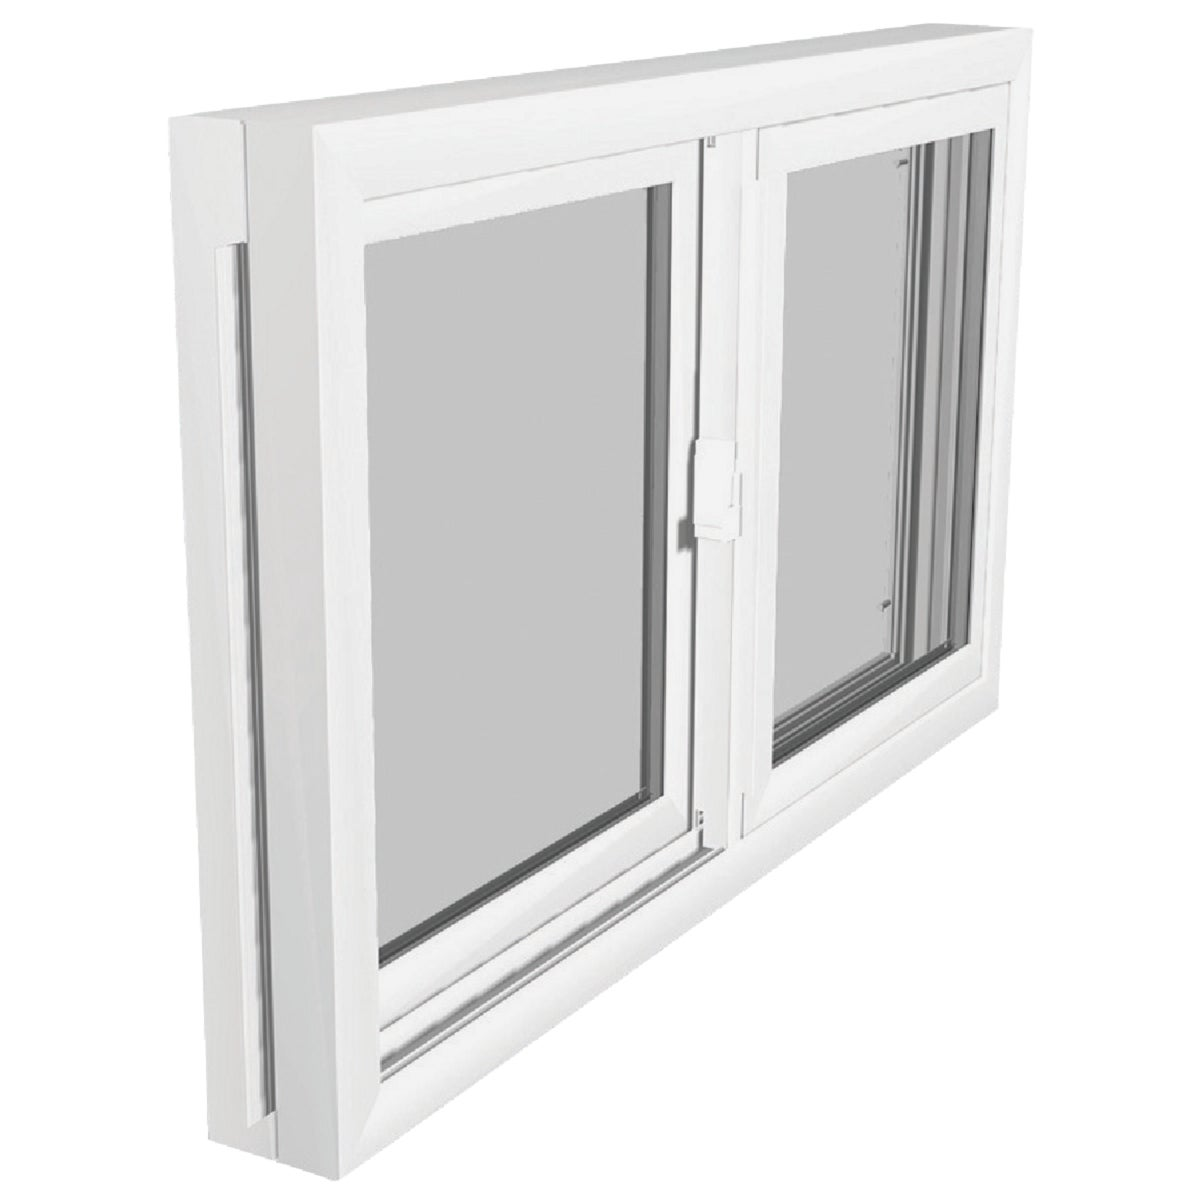 WHT BSMT SLDR WINDOW - 3214 by Duo Corp